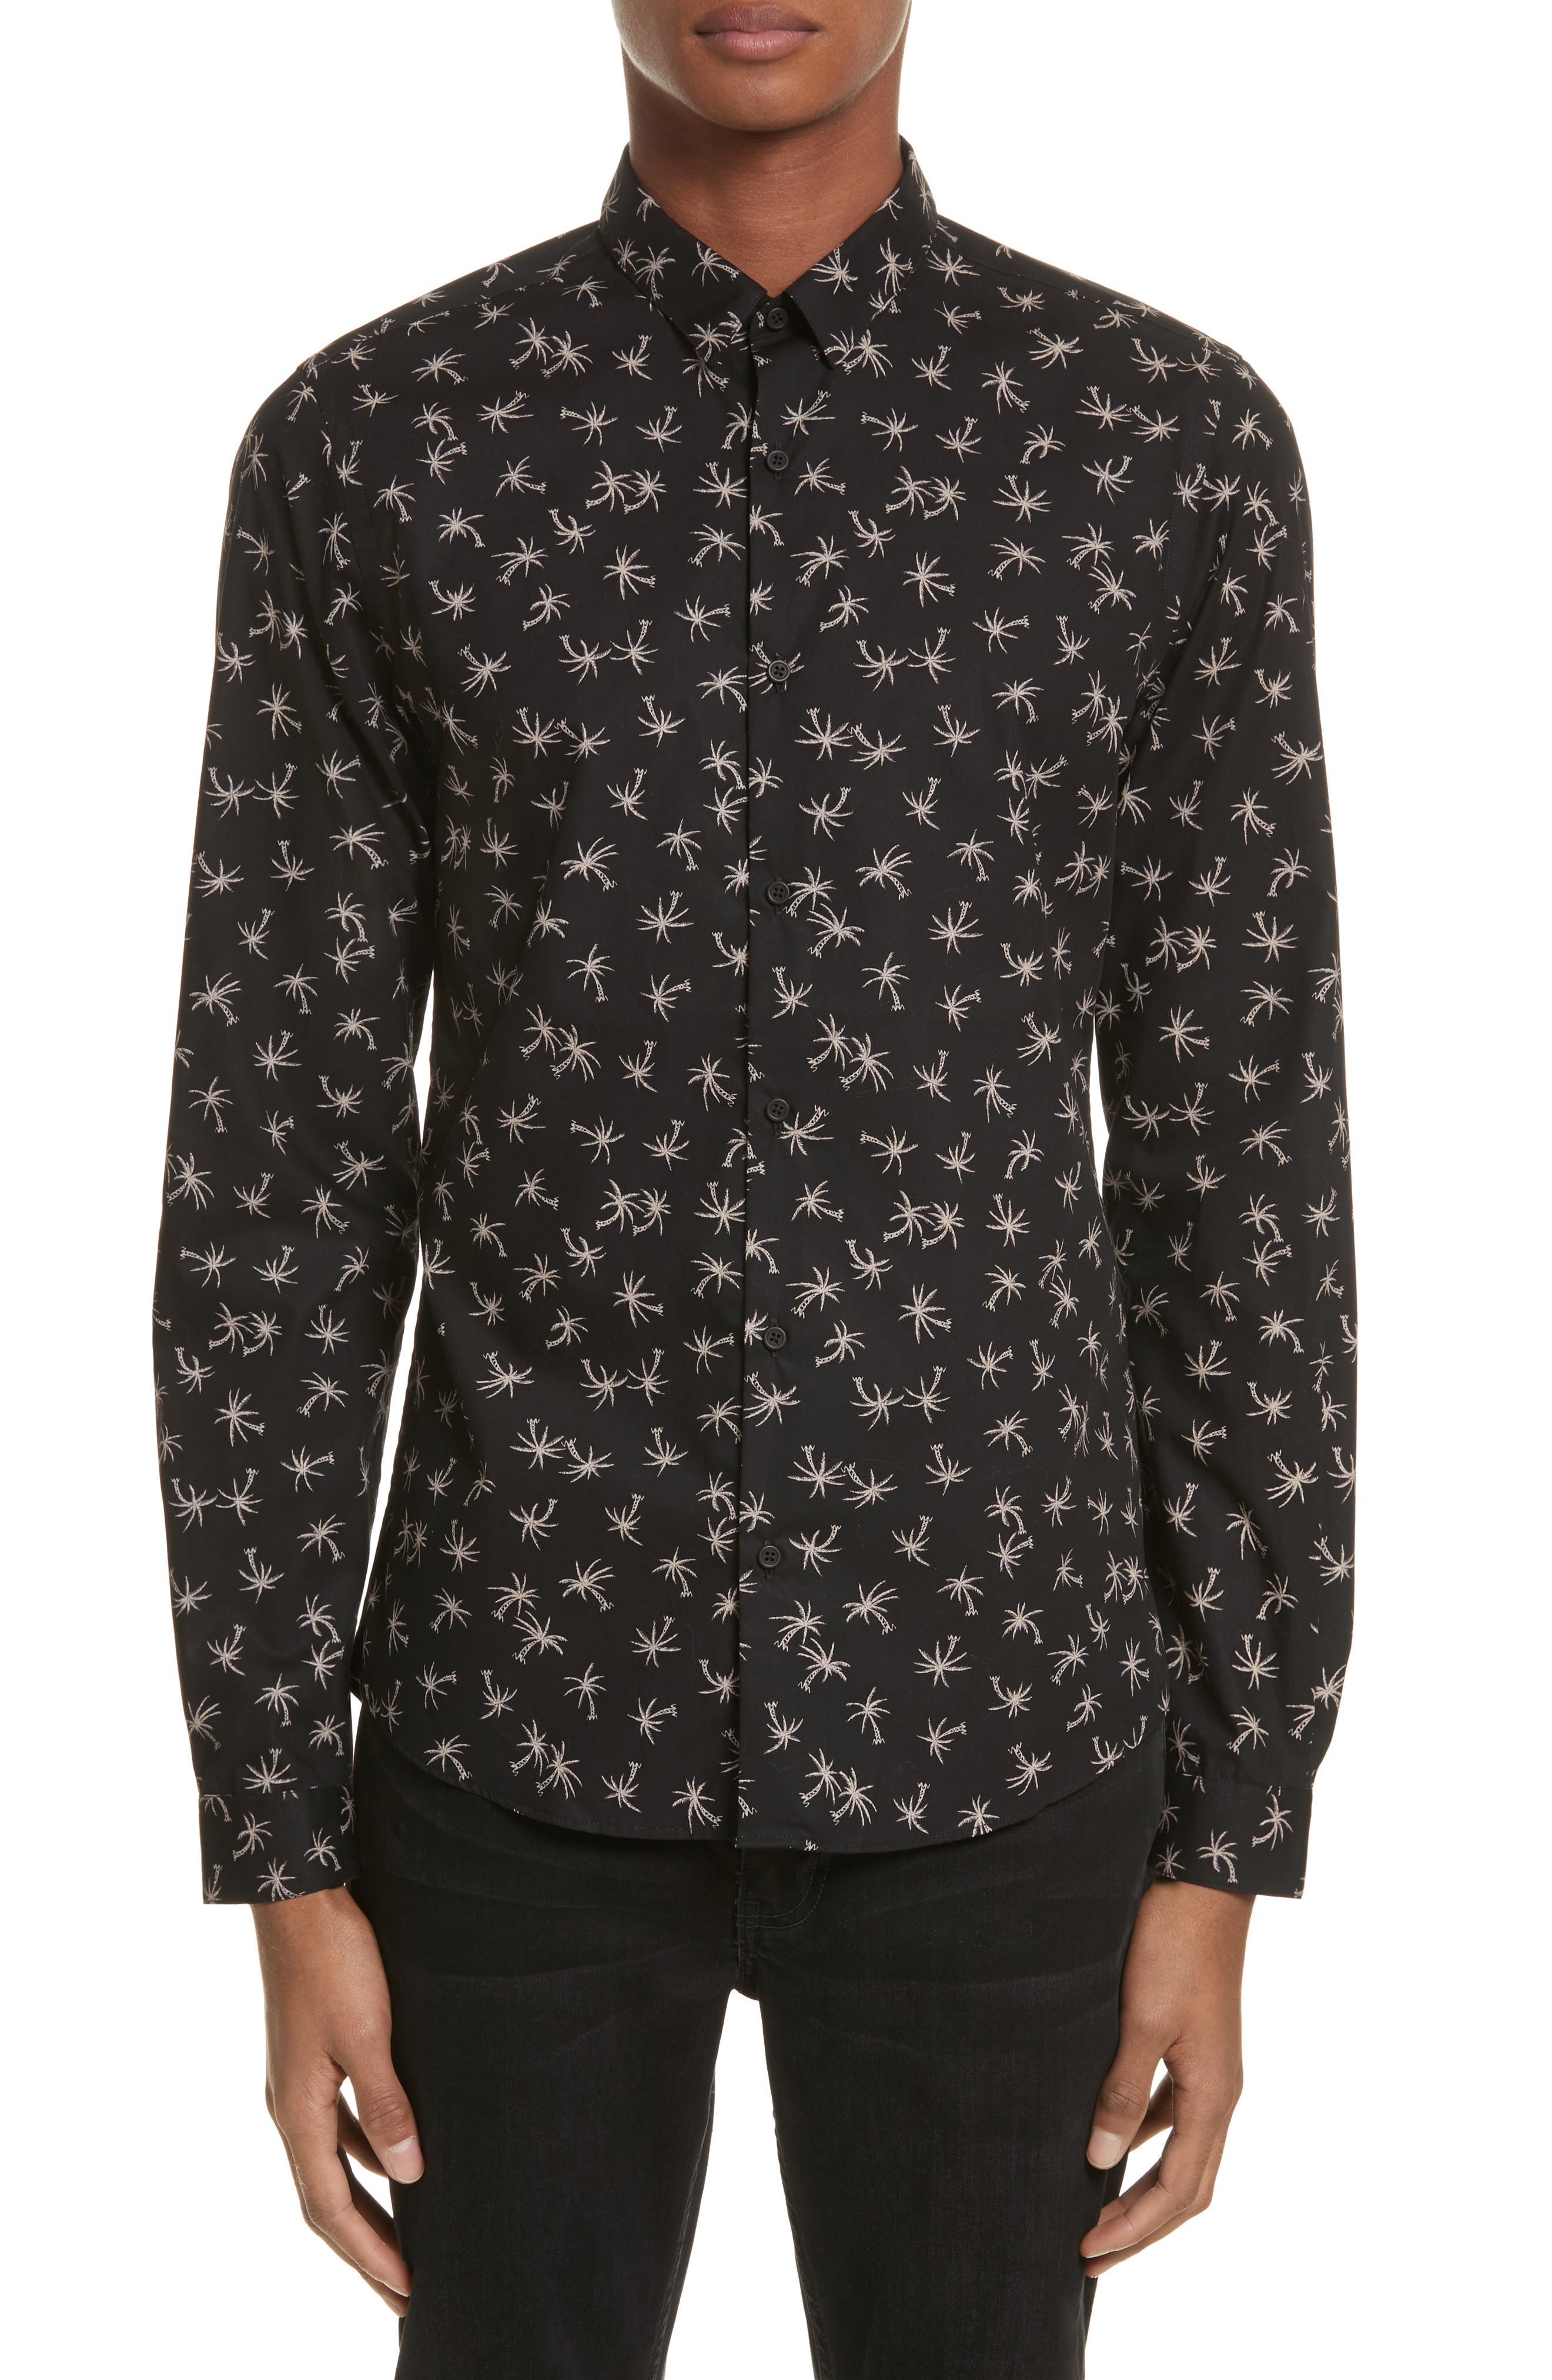 Alternate Image 1 Selected - The Kooples Palm Tree Print Woven Shirt